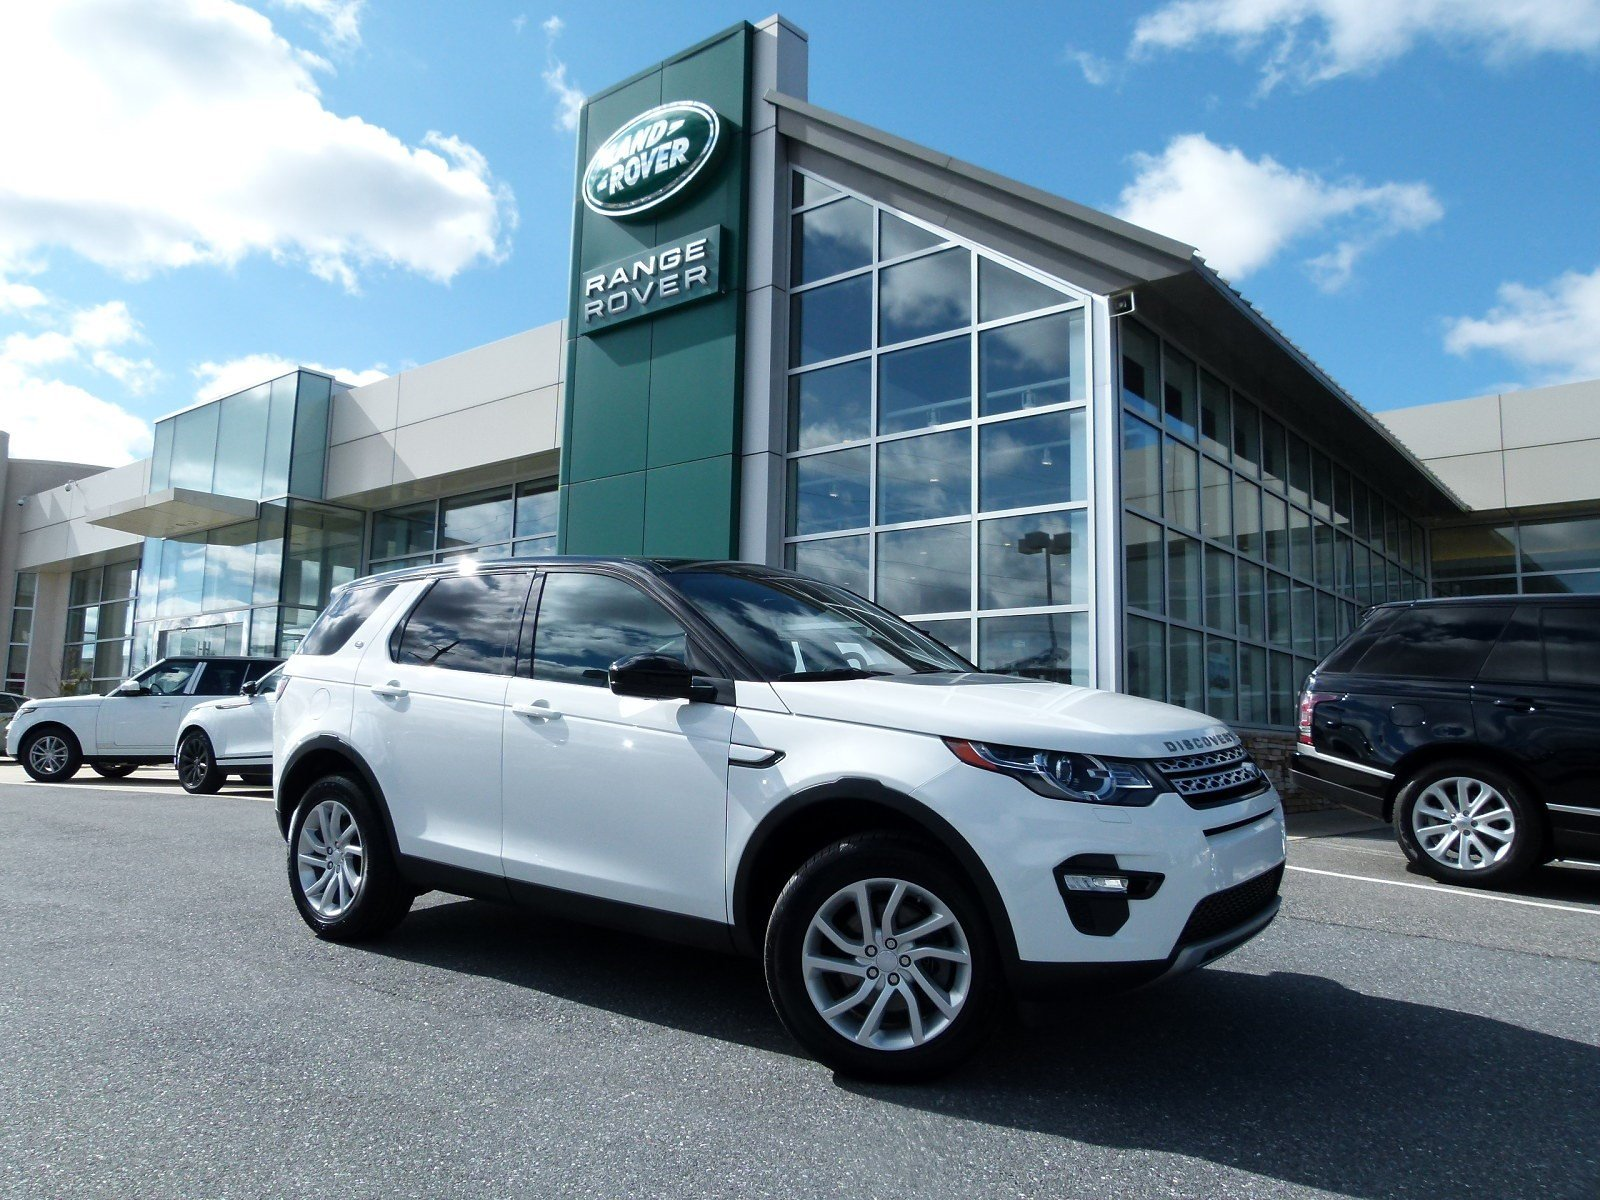 test land sport landrover drive review of se rover expert discovery lease